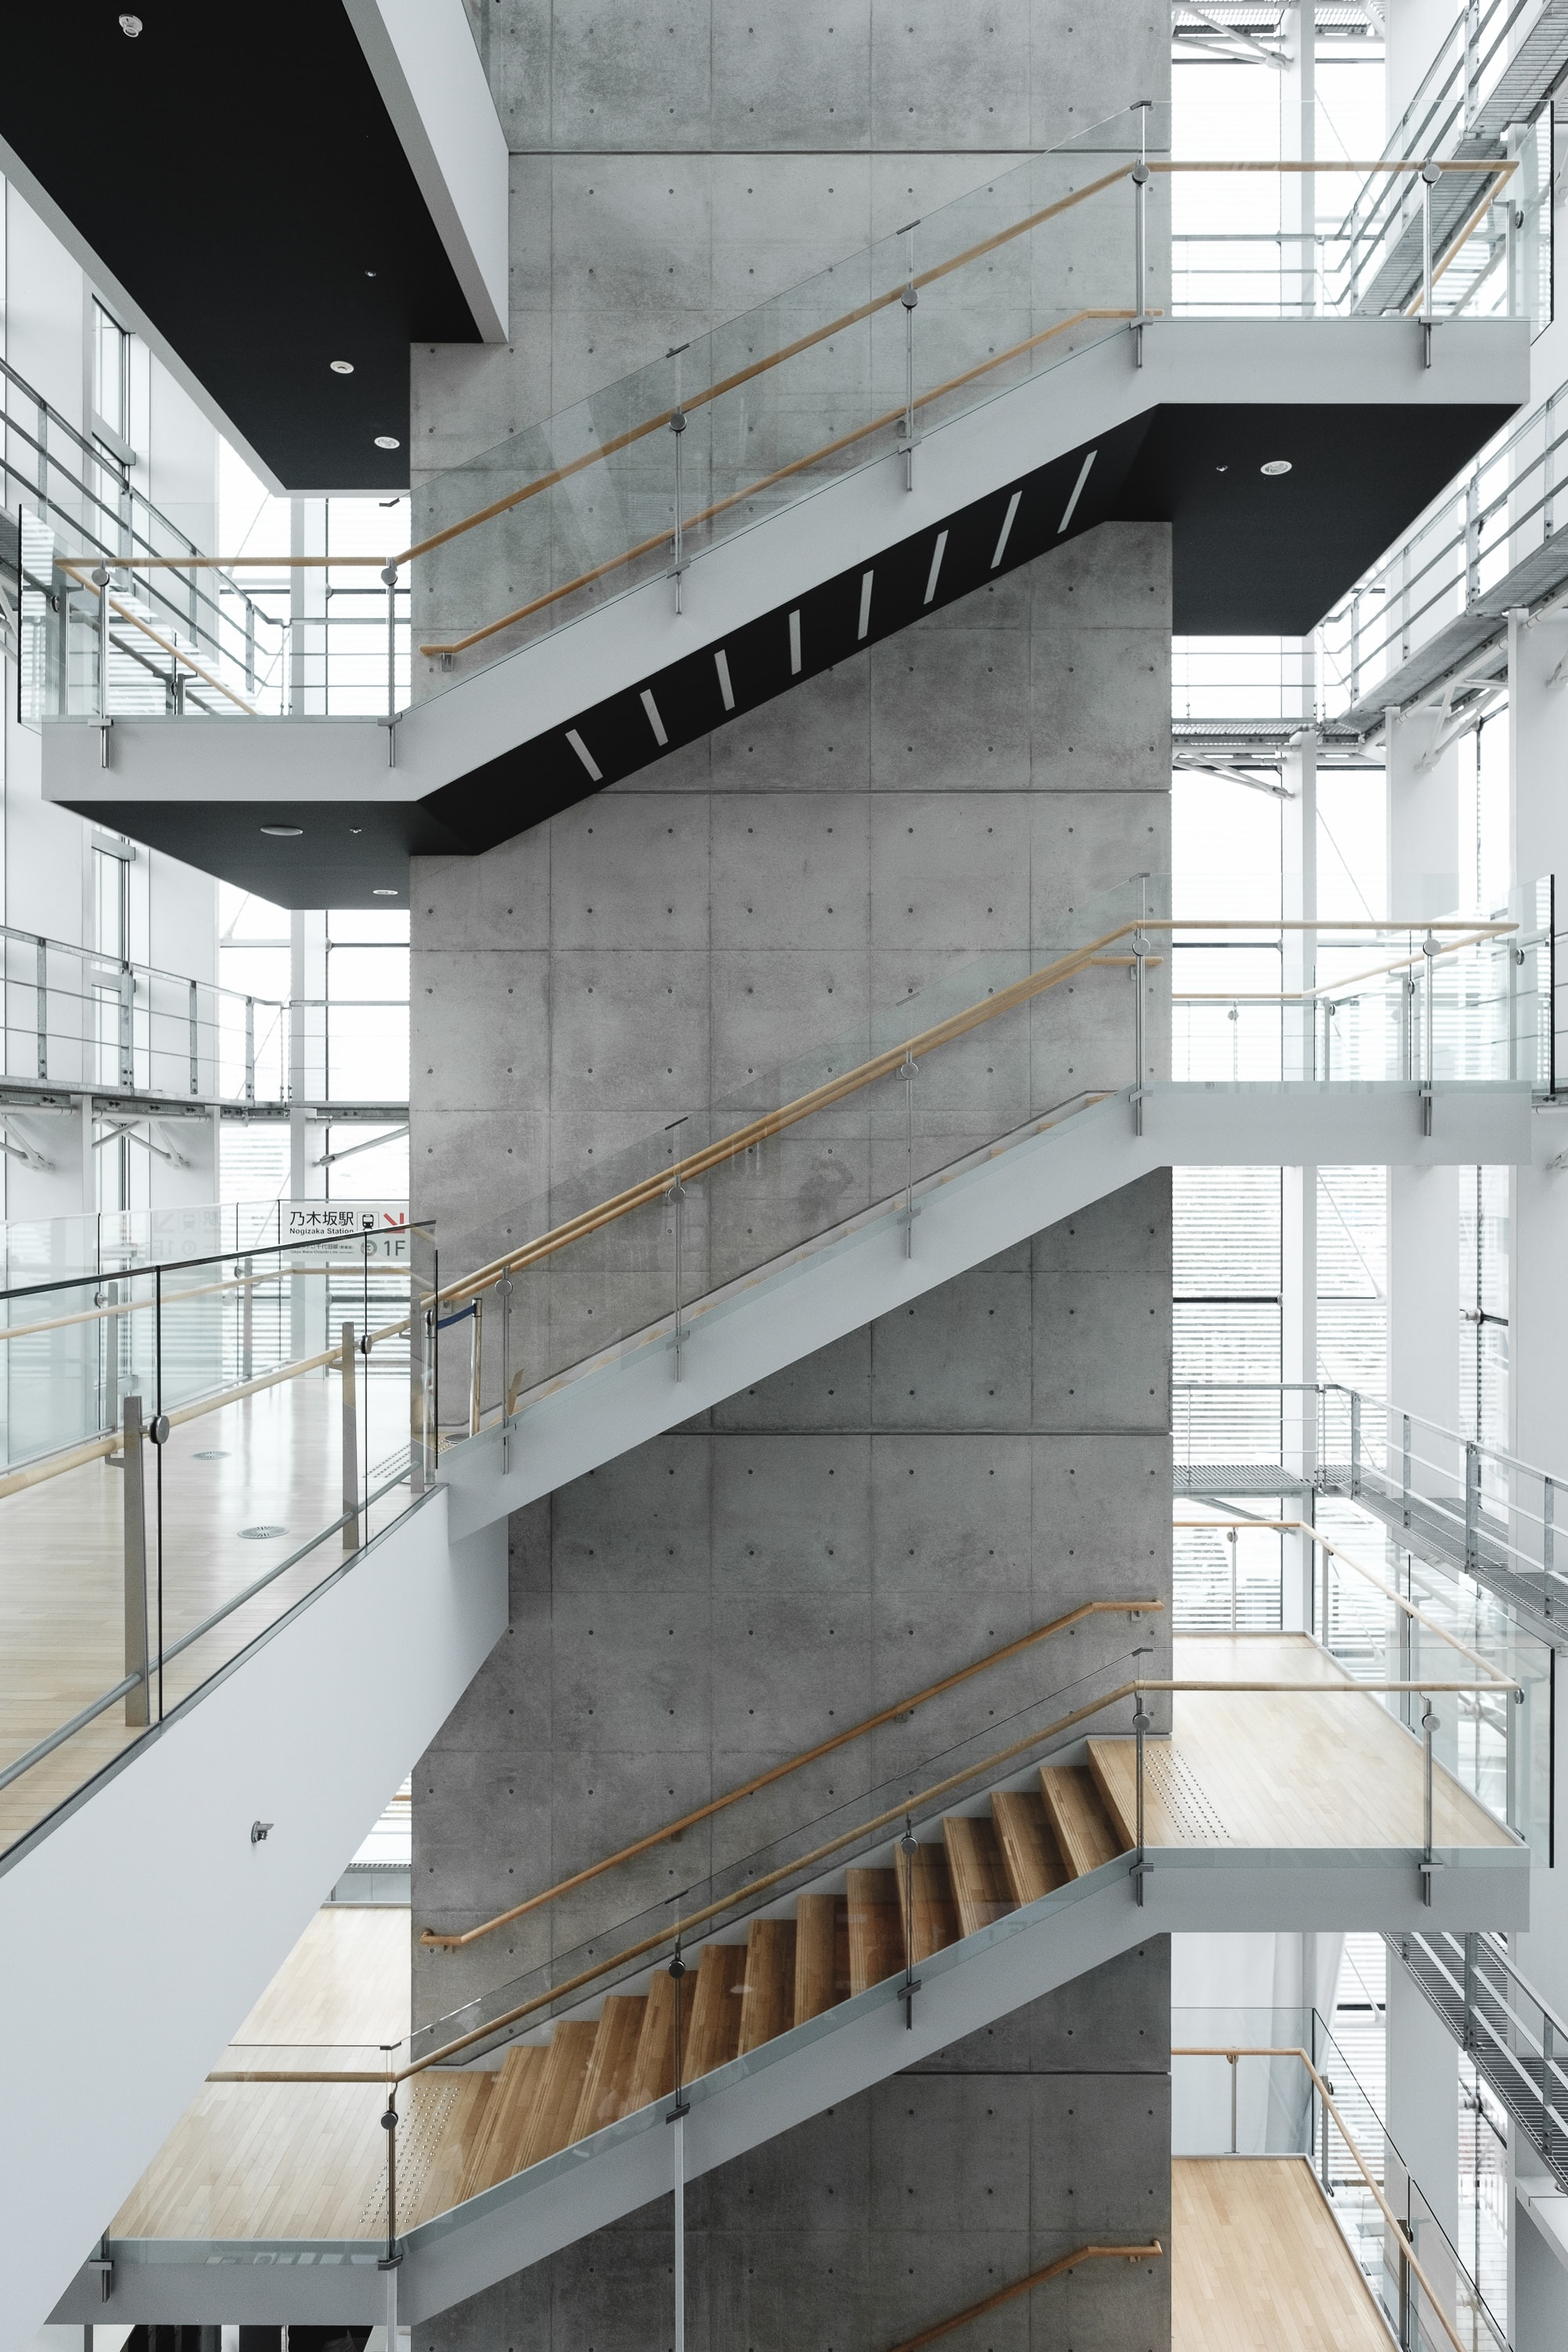 architectural photography of building with stairs